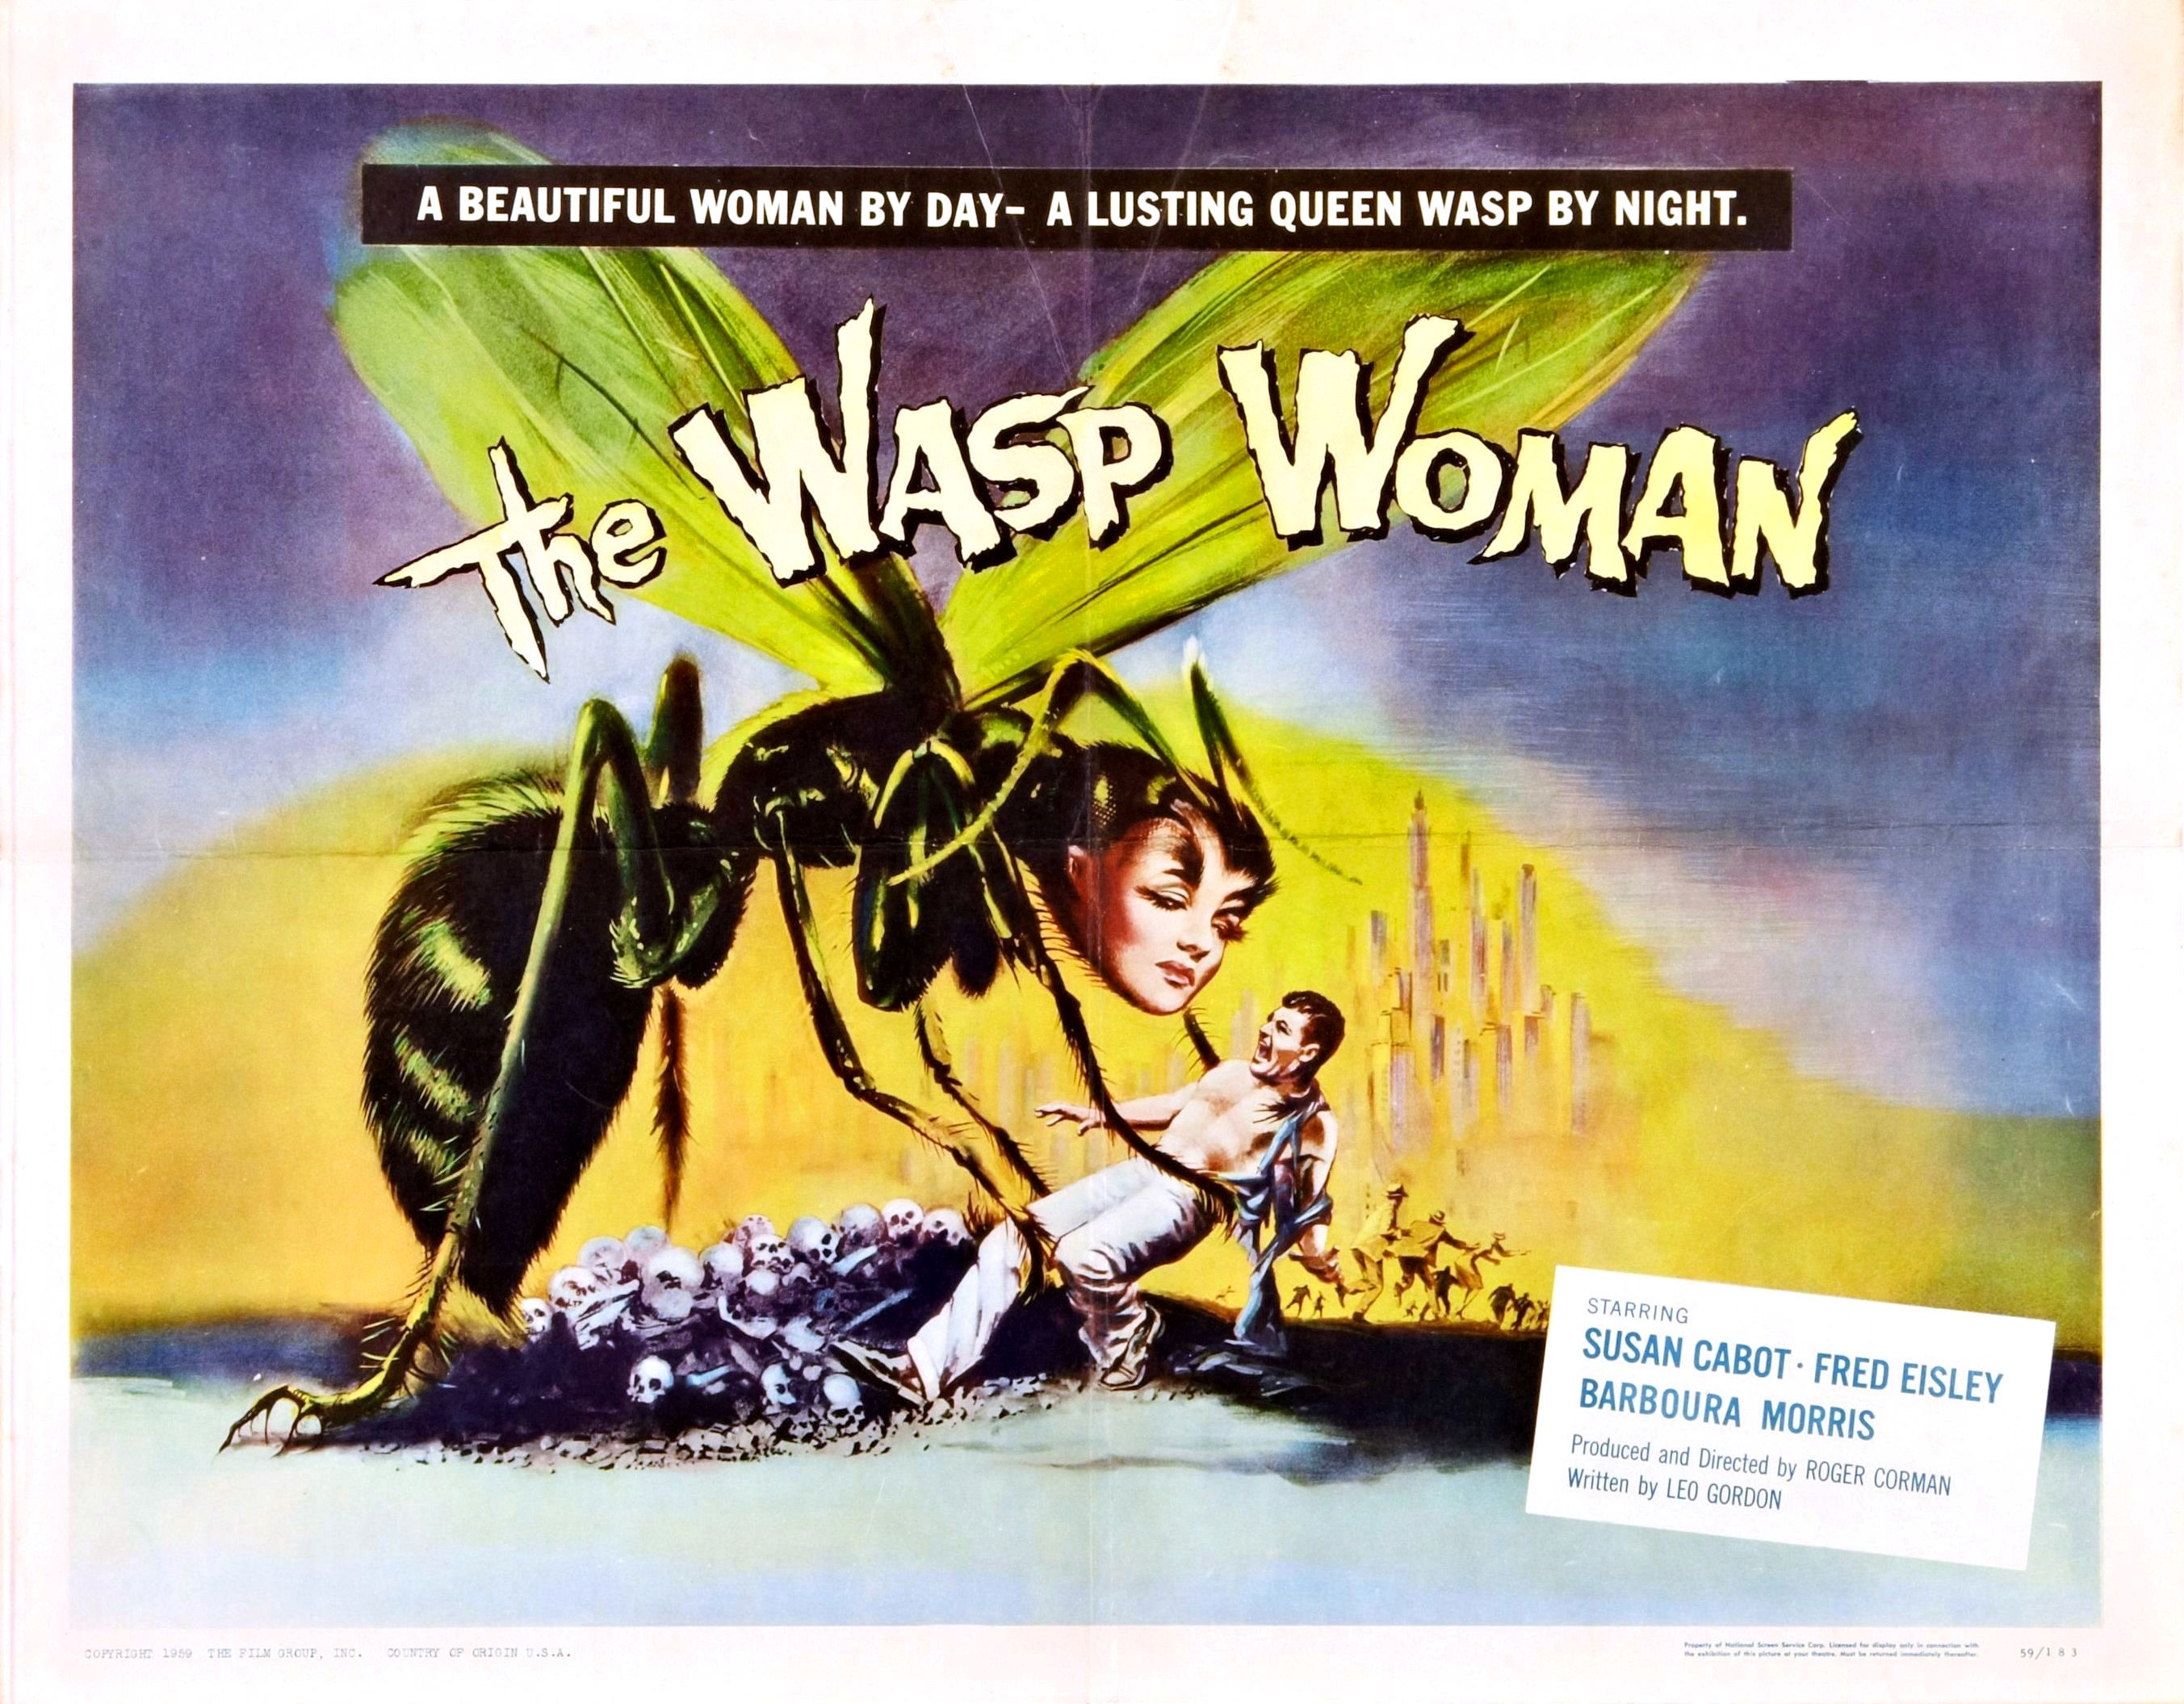 wasp_woman_roger_corman_postermrhorrorpediawasp_woman_roger_corman_posterwasp_woman_lobby_card_112-Horror-Cult-Classics-DVDwasp_woman_lc_04wasp_woman_lc_07wasp_woman_lc_08Wasp-Woman-lobby-cardroger corman monsters dvdBeast from Haunted Cave + wasp womanThe-Fly-Wasp-Woman-UK-X-cert-quad-posterELVIRA-MISTRESS-OF-THE-DARK-THE-WASP-WOMAN-AND-THE-CRAWLING-HAND